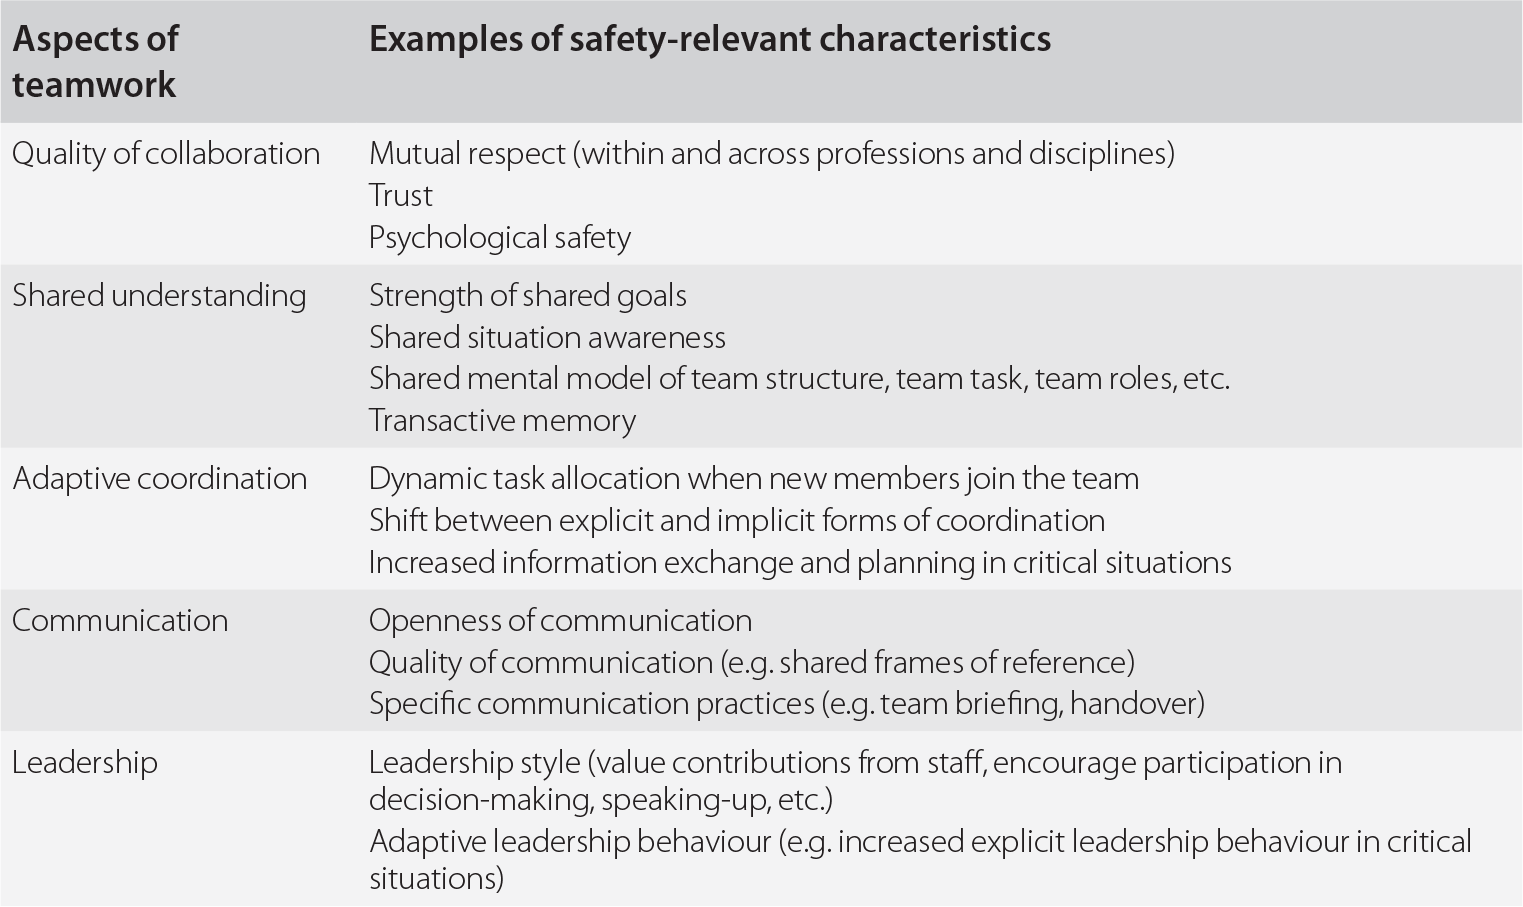 Quality management of the ICU (Section 2) - Quality